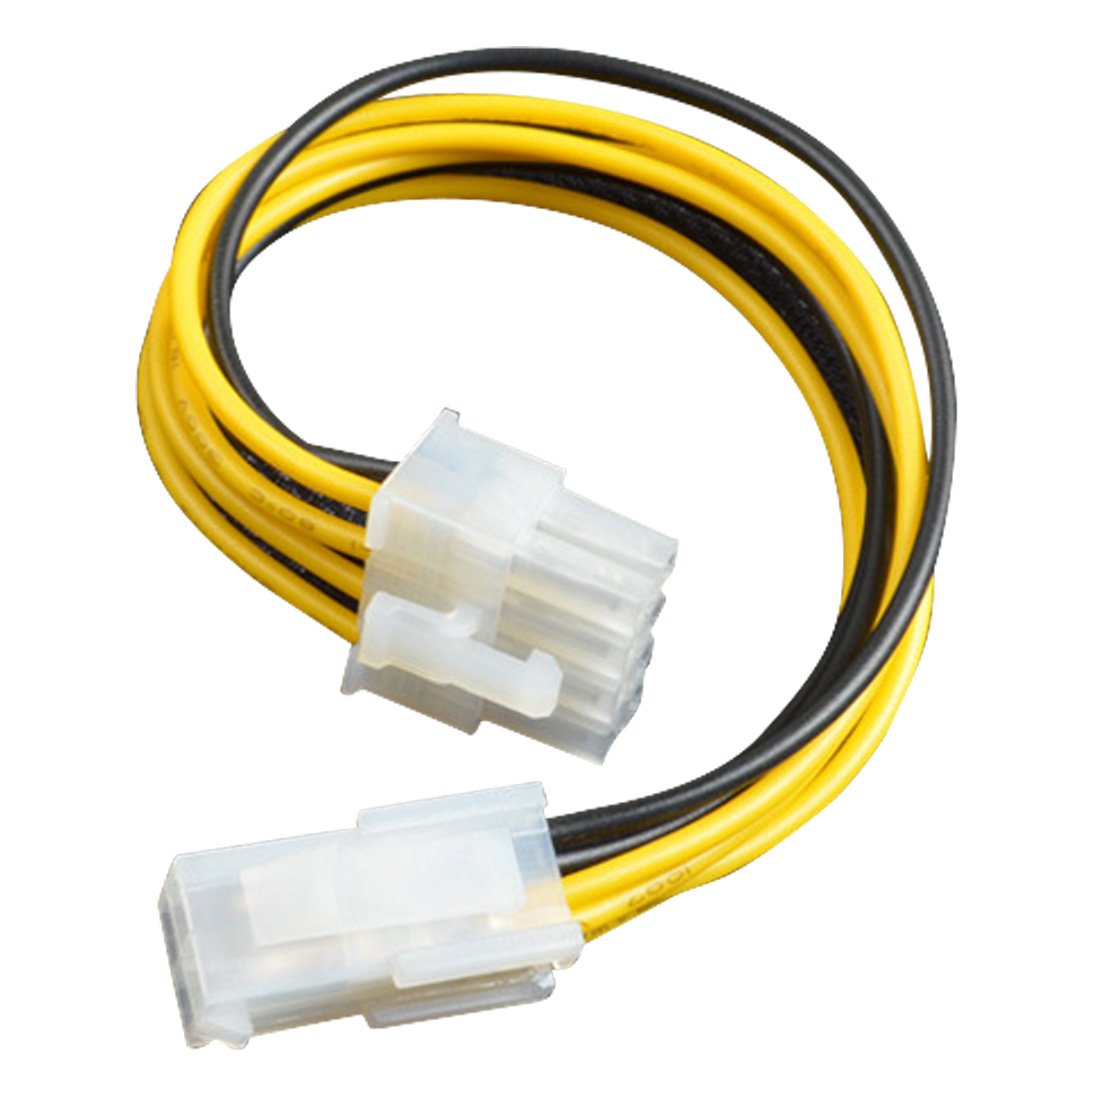 Professional Computer Cables ATX 4 Pin Male To 8 Pin Female EPS Power Cable Cord Adapter CPU Power Supply Connector